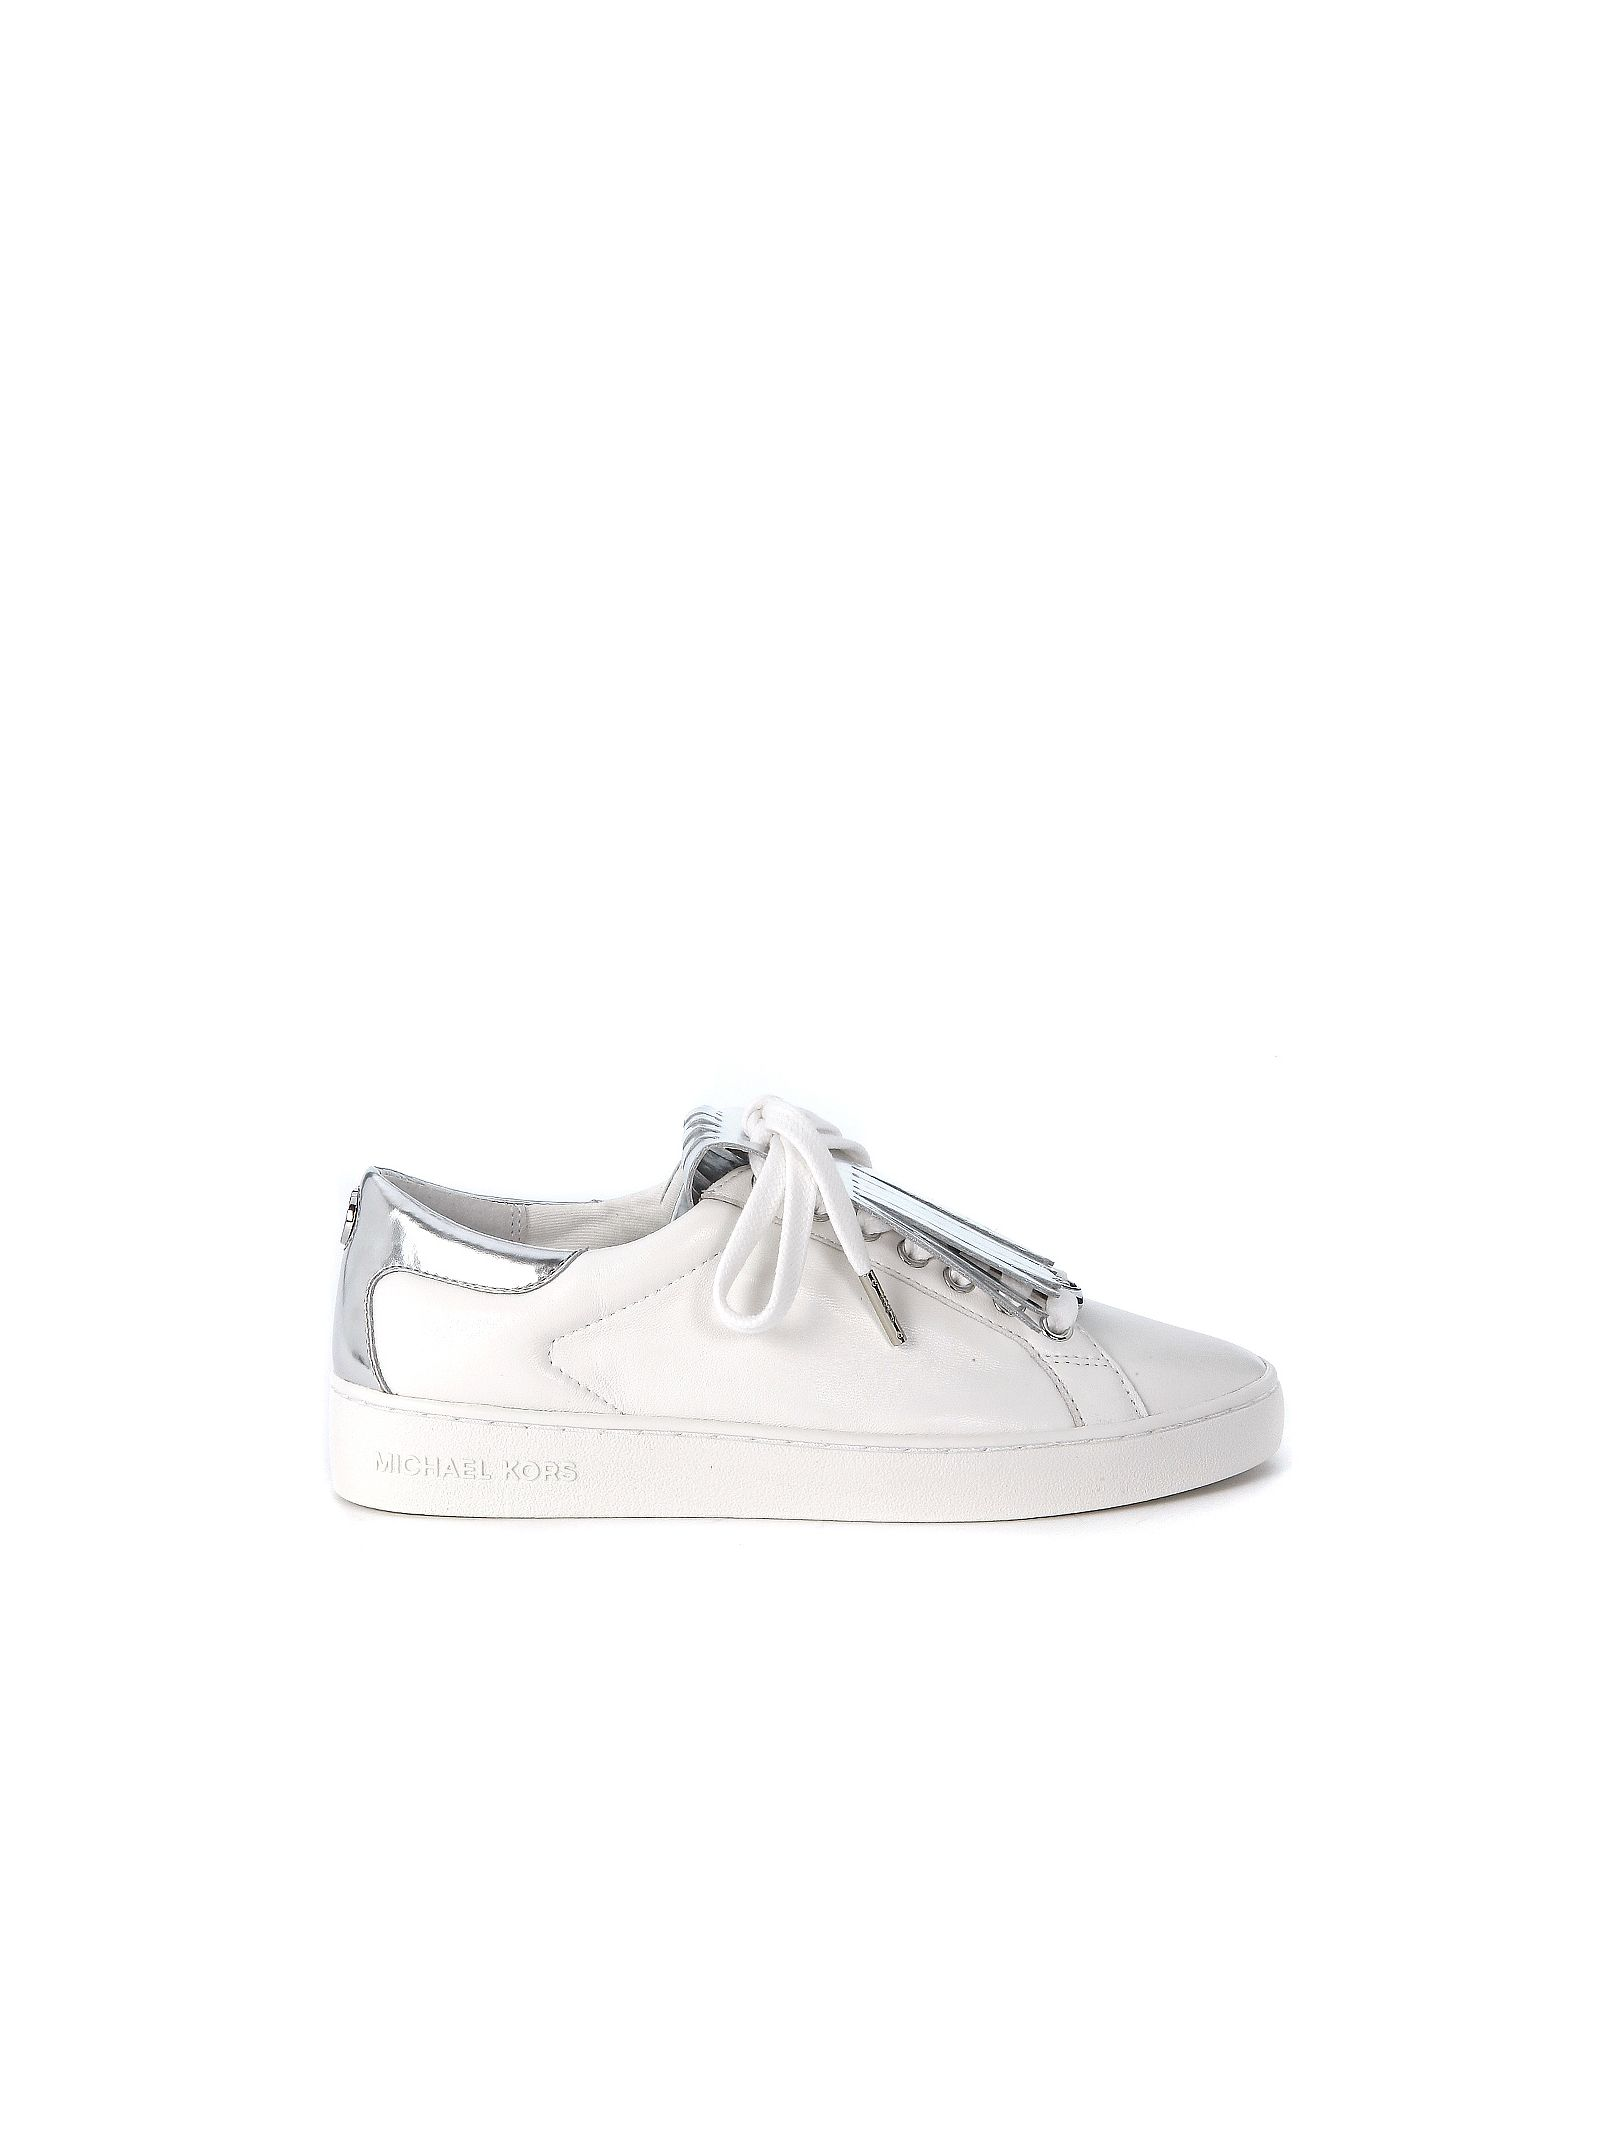 michael kors female  michael kors keaton kiltie sneaker in white leather with silver fringe